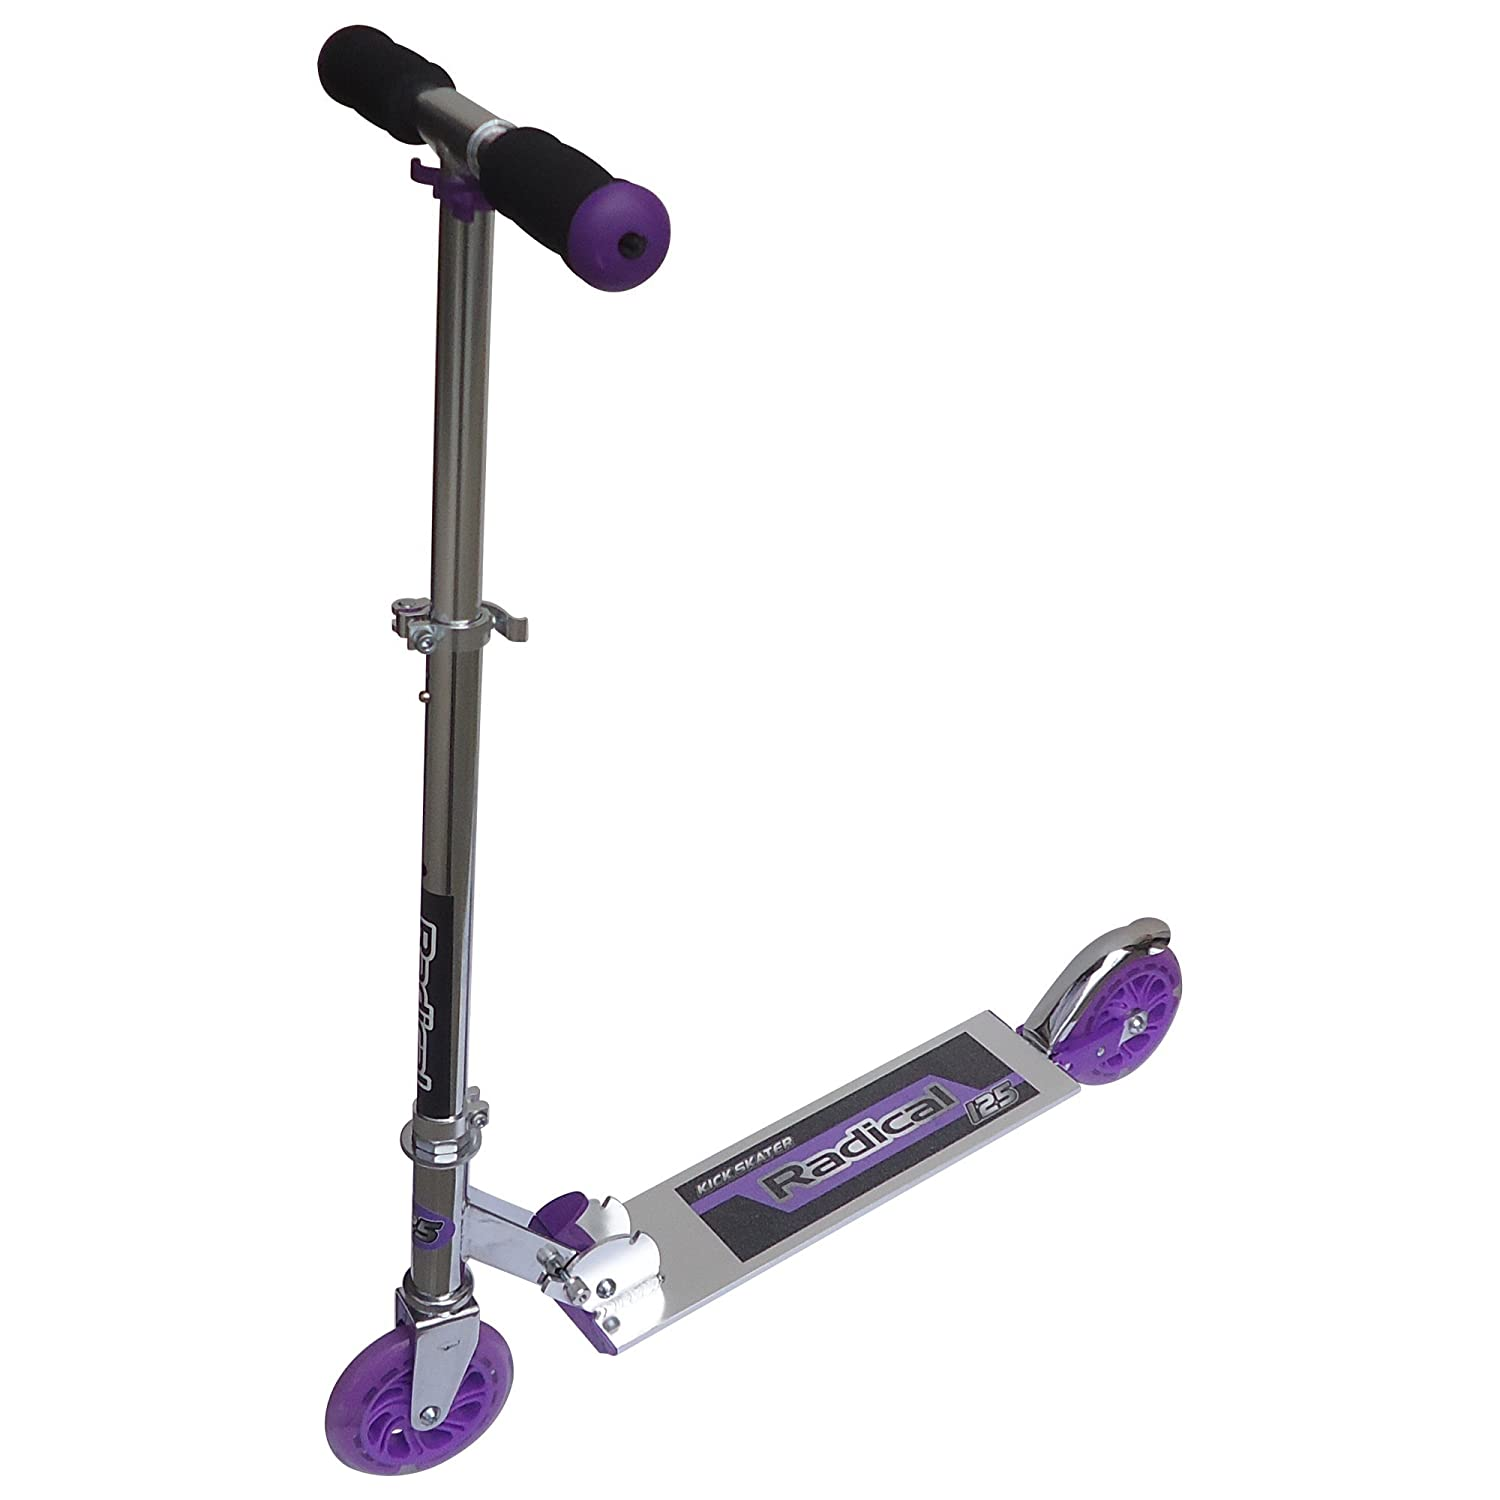 Radical Height Adjustable Light Up Wheels Kick Scooter, Easy to Fold, Color : Purple